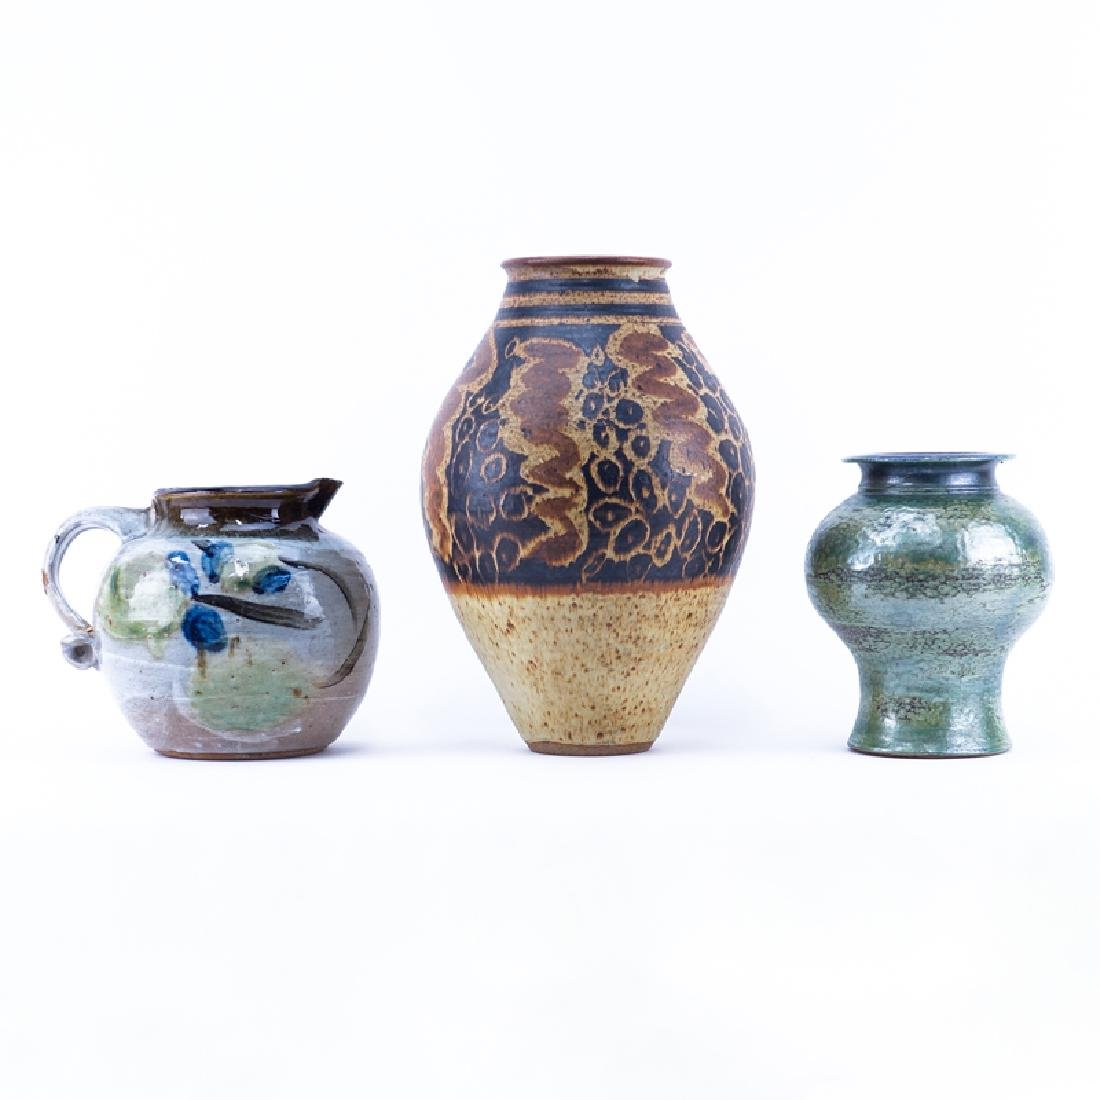 A Grouping of Three (3) Studio Art Pottery Vases. All